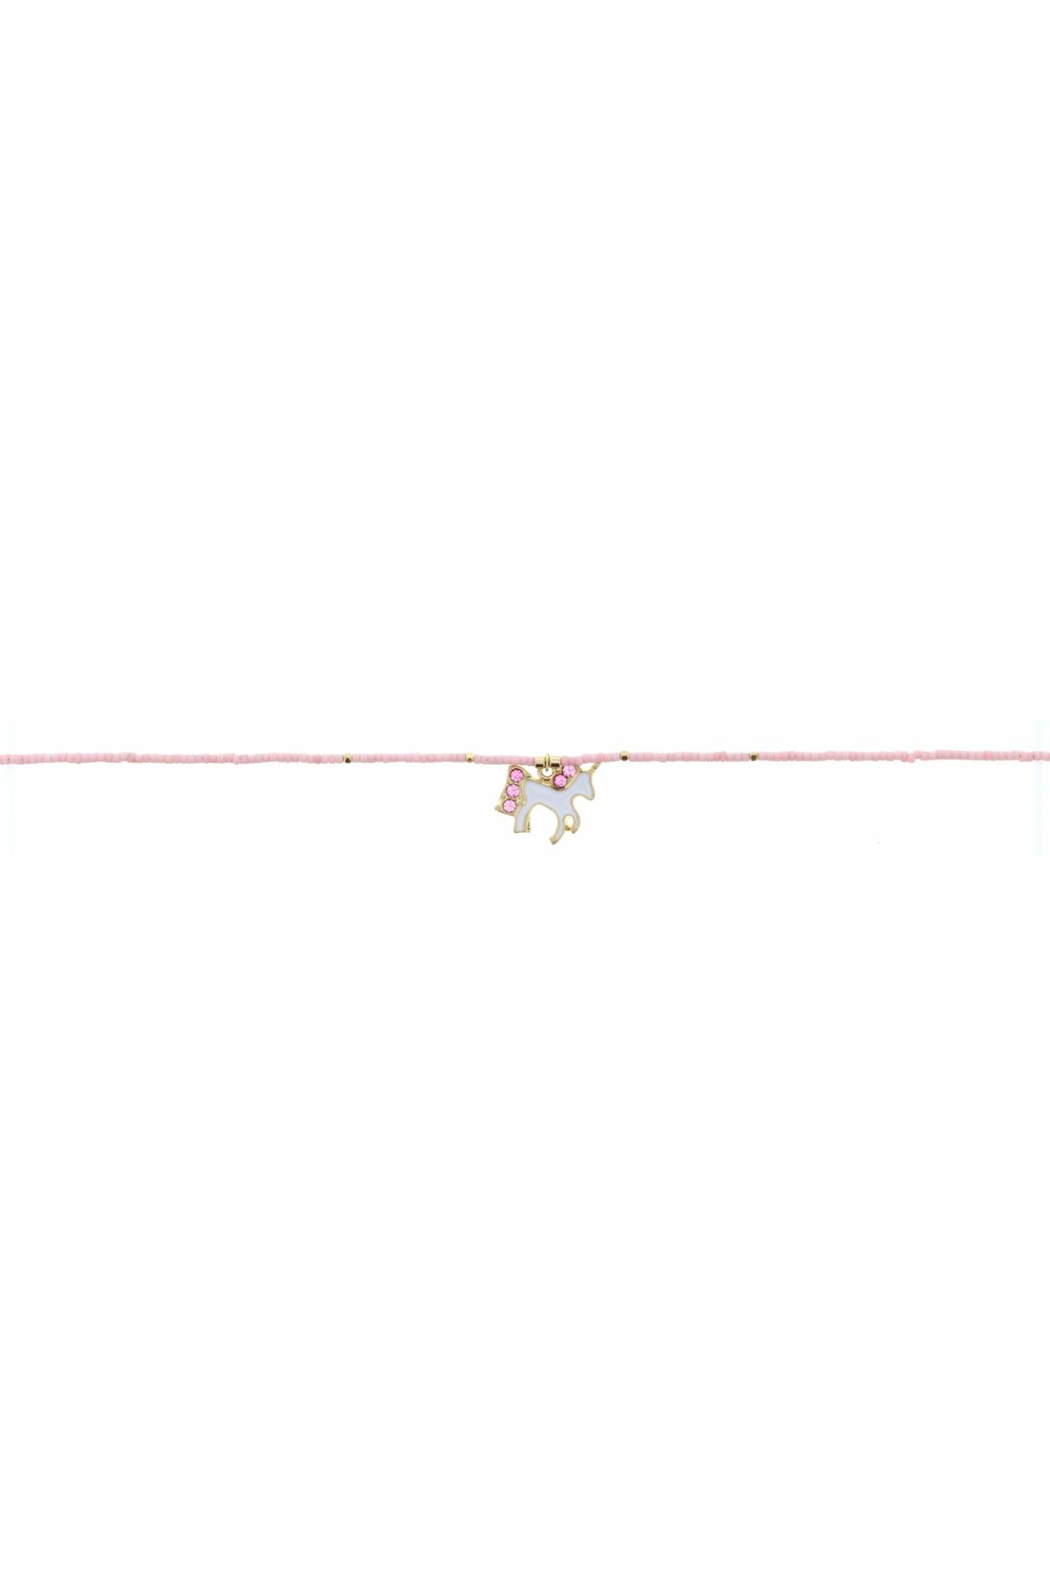 Jane Marie Seed Bead Necklace - Light Pink With Unicorn Charm - Main Image